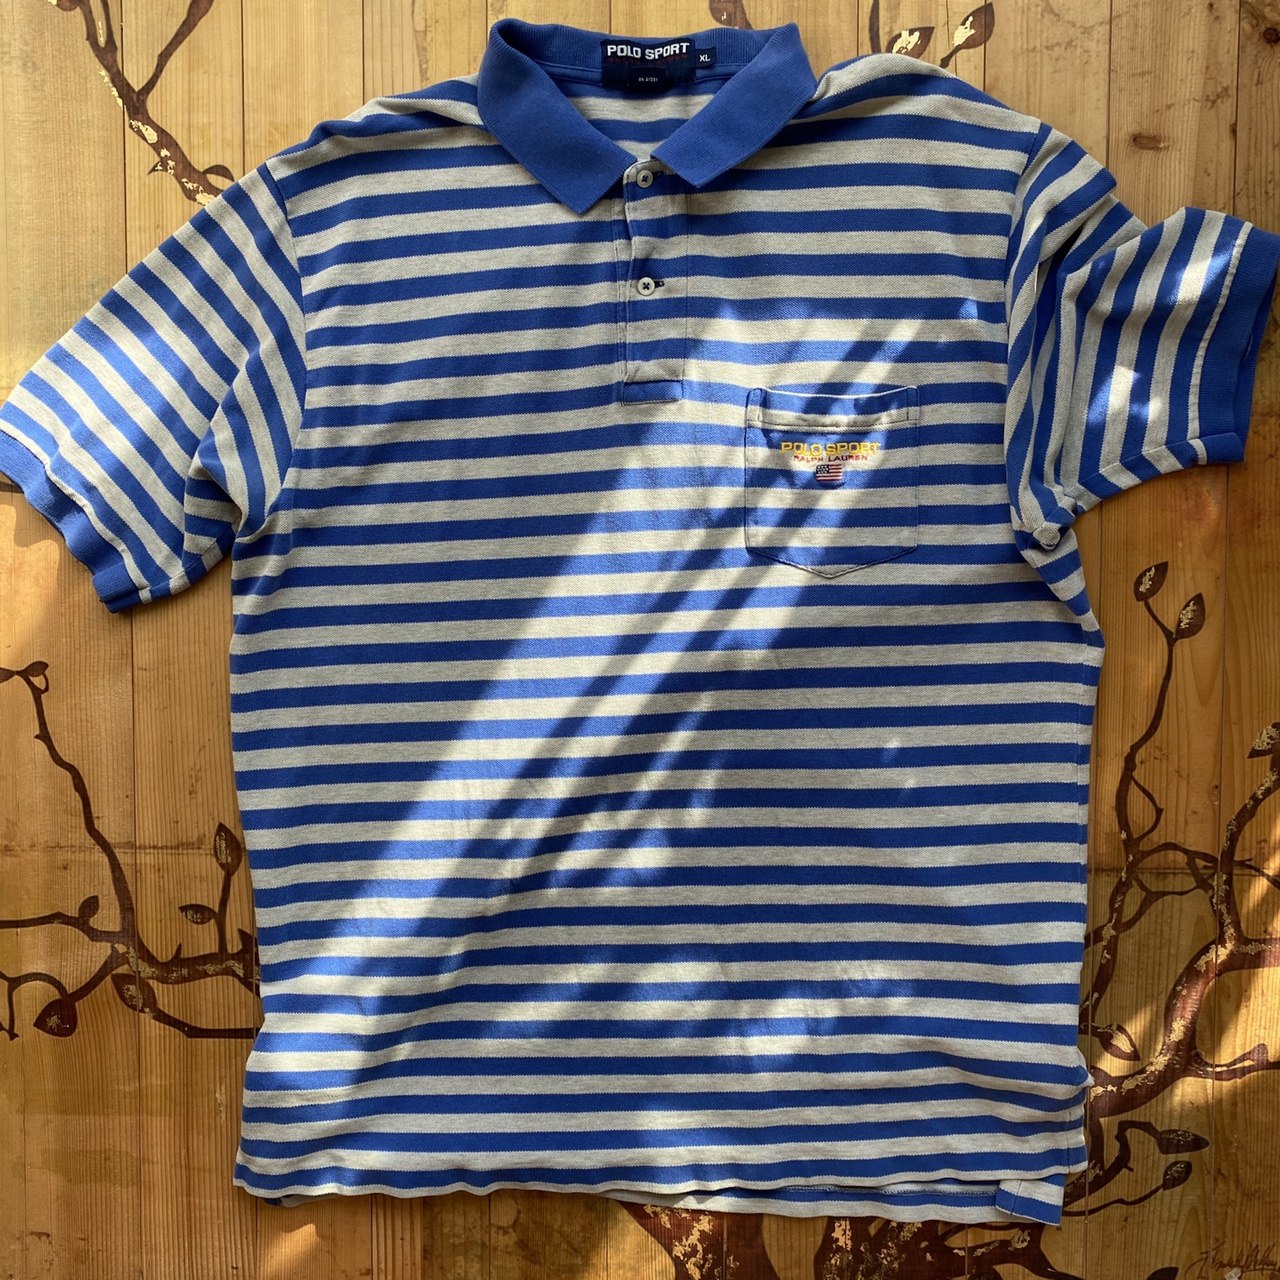 Product Image 1 - Ralph Lauren polo polo sport